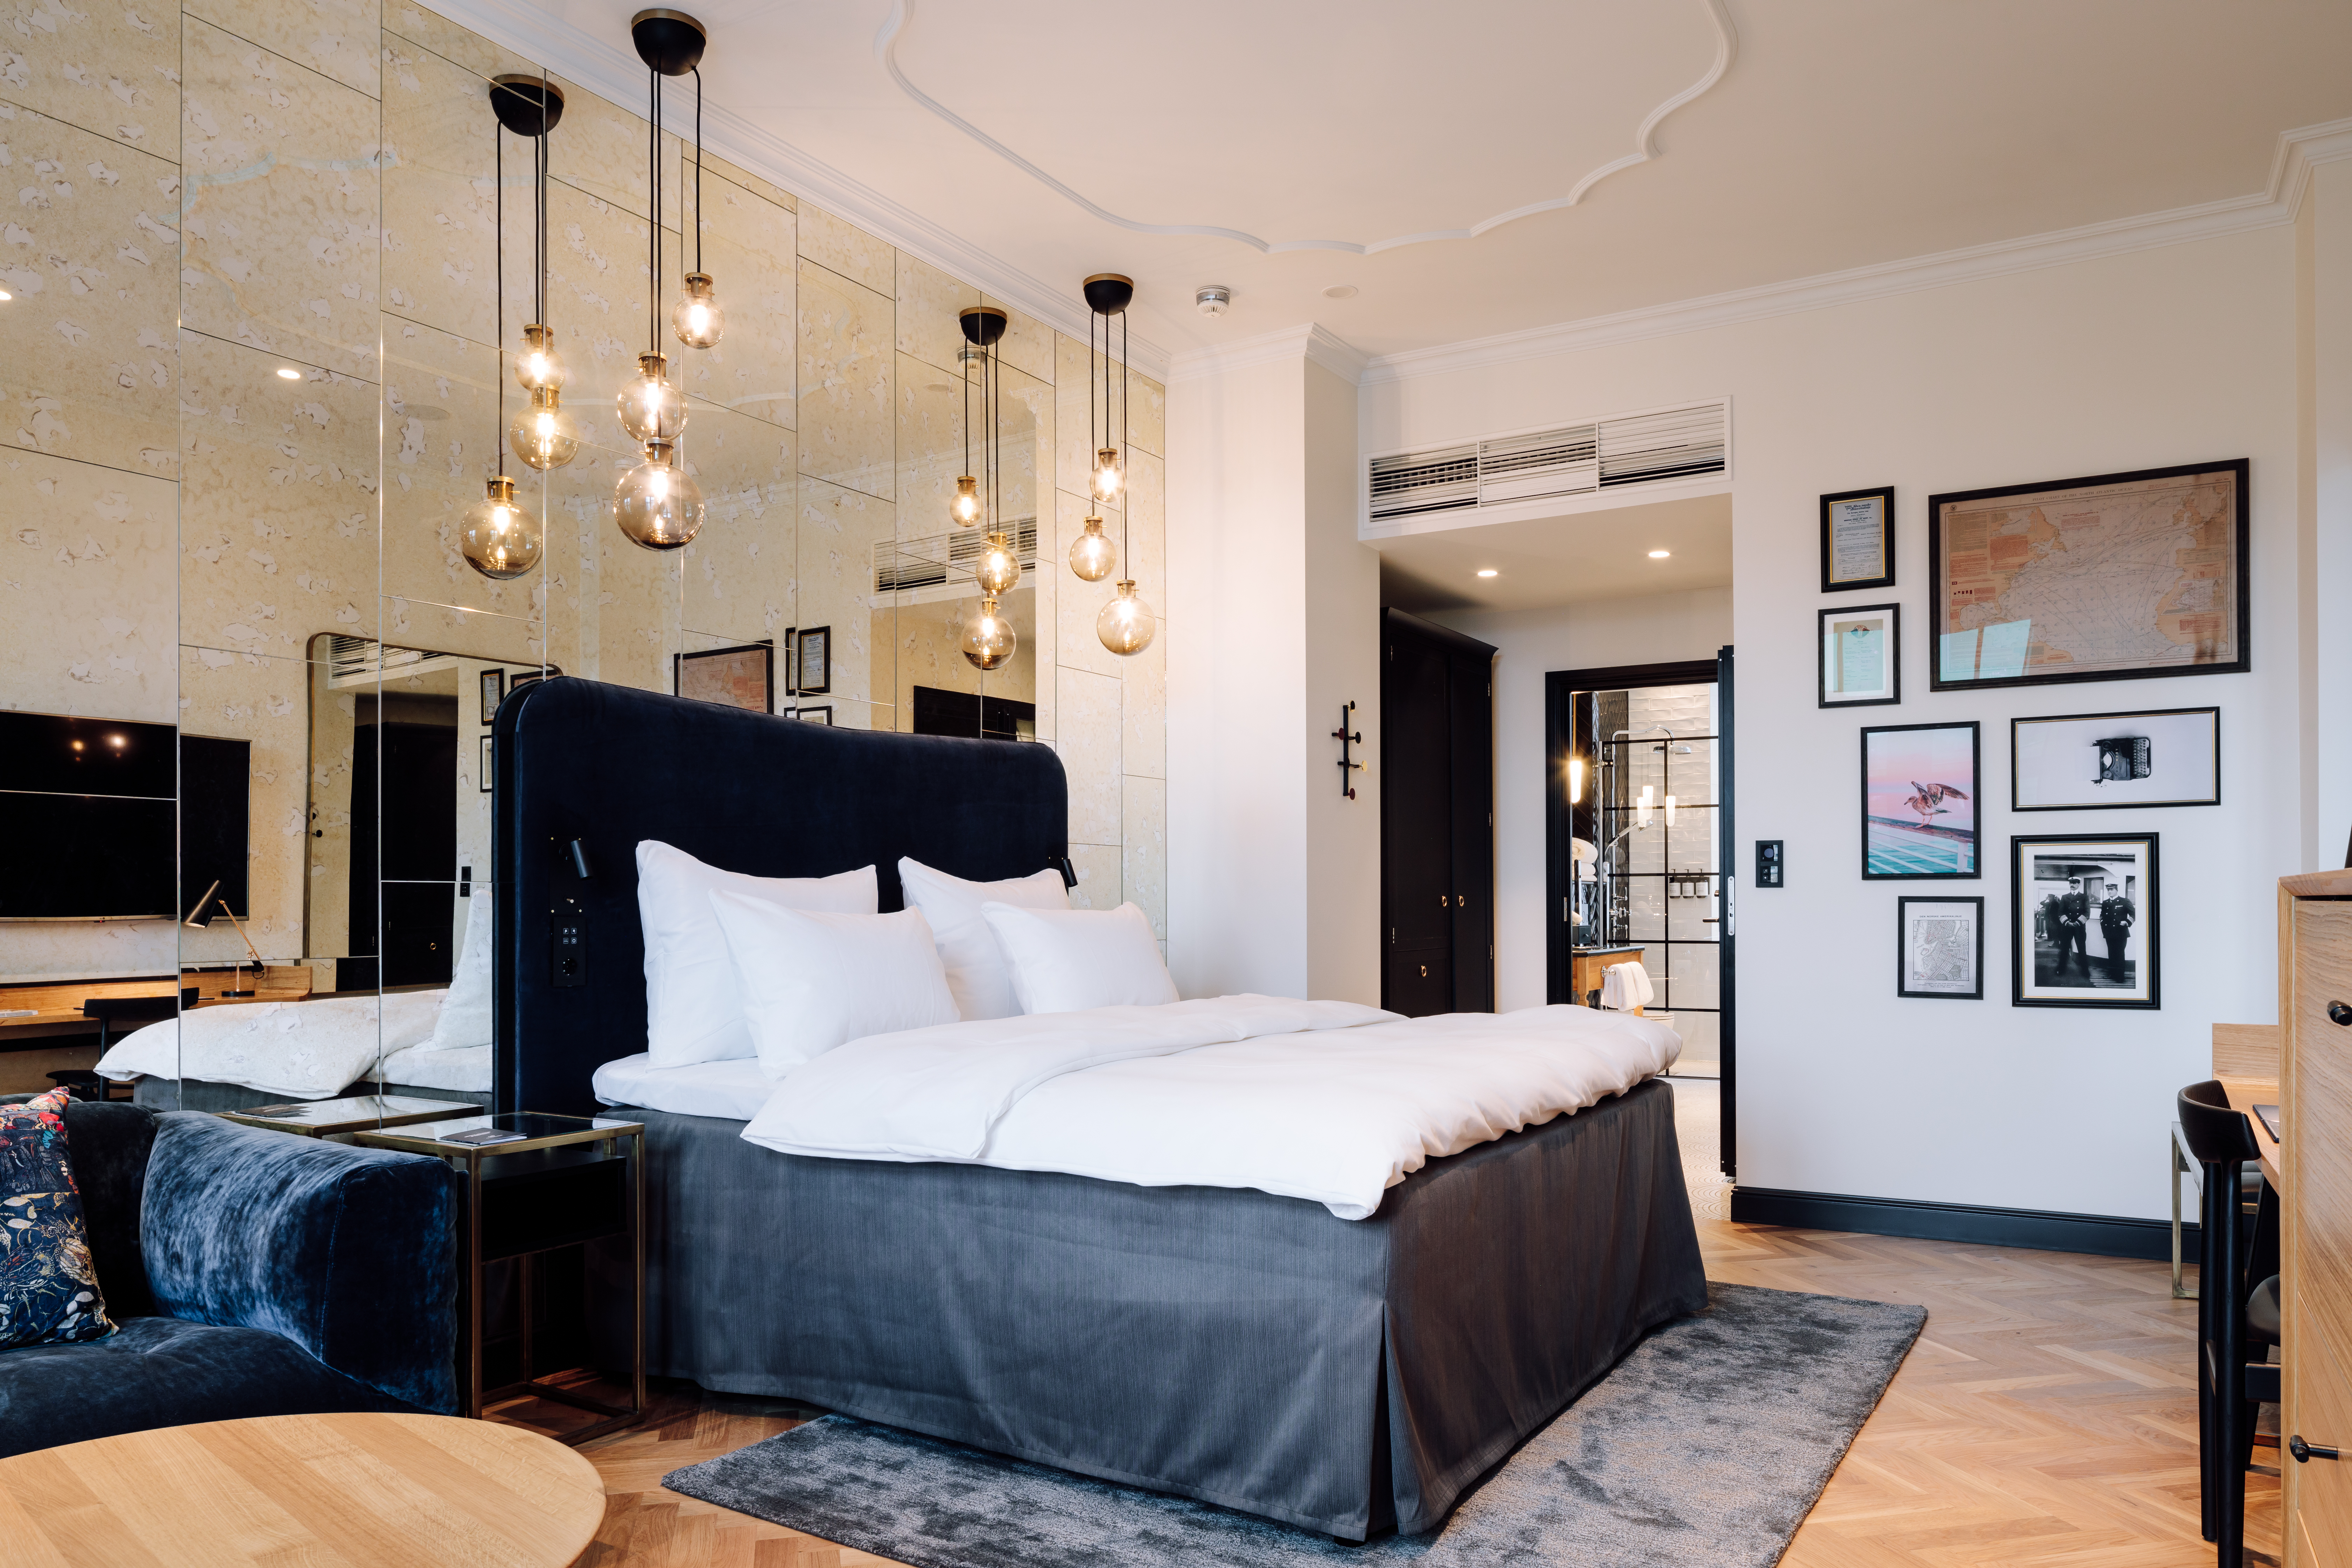 Hilding Anders supplied beds to one of Oslo's most hyped hotels